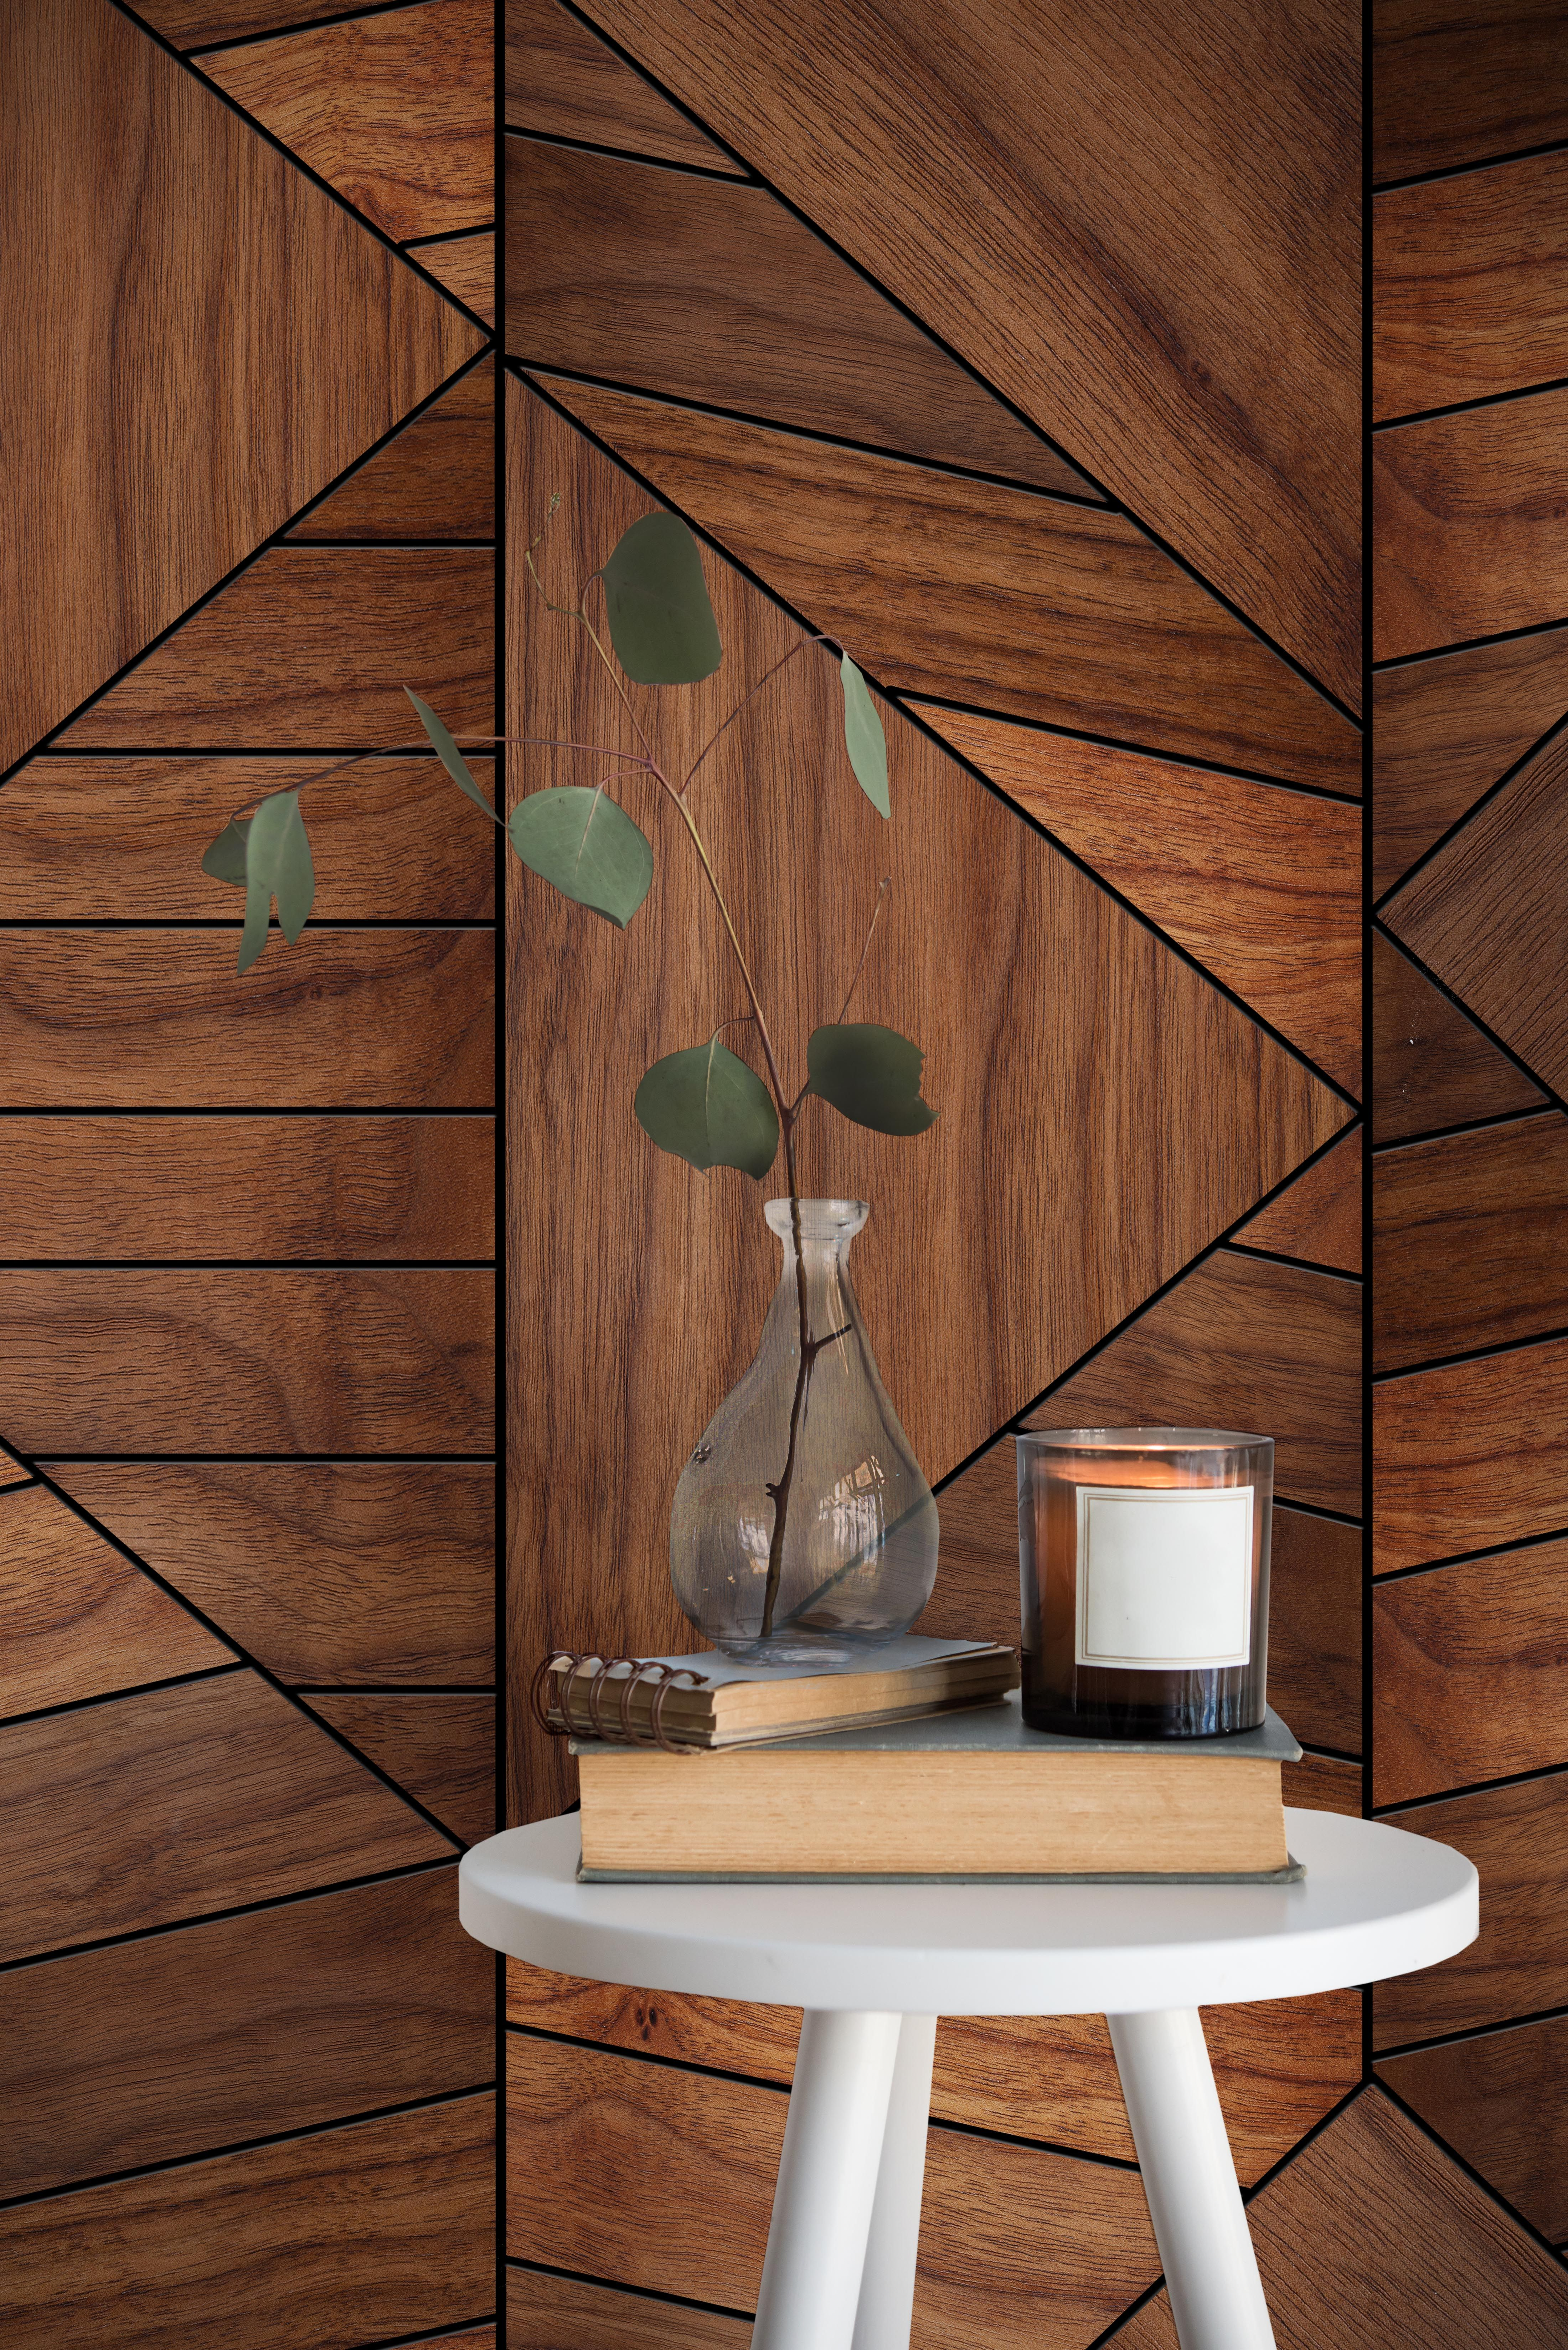 Wood Look Wallpaper Large Scale Walnut Panels In An On Trend Geometric Design Stunning P Wood Wall Design Geometric Wood Wallpaper Geometric Interior Design